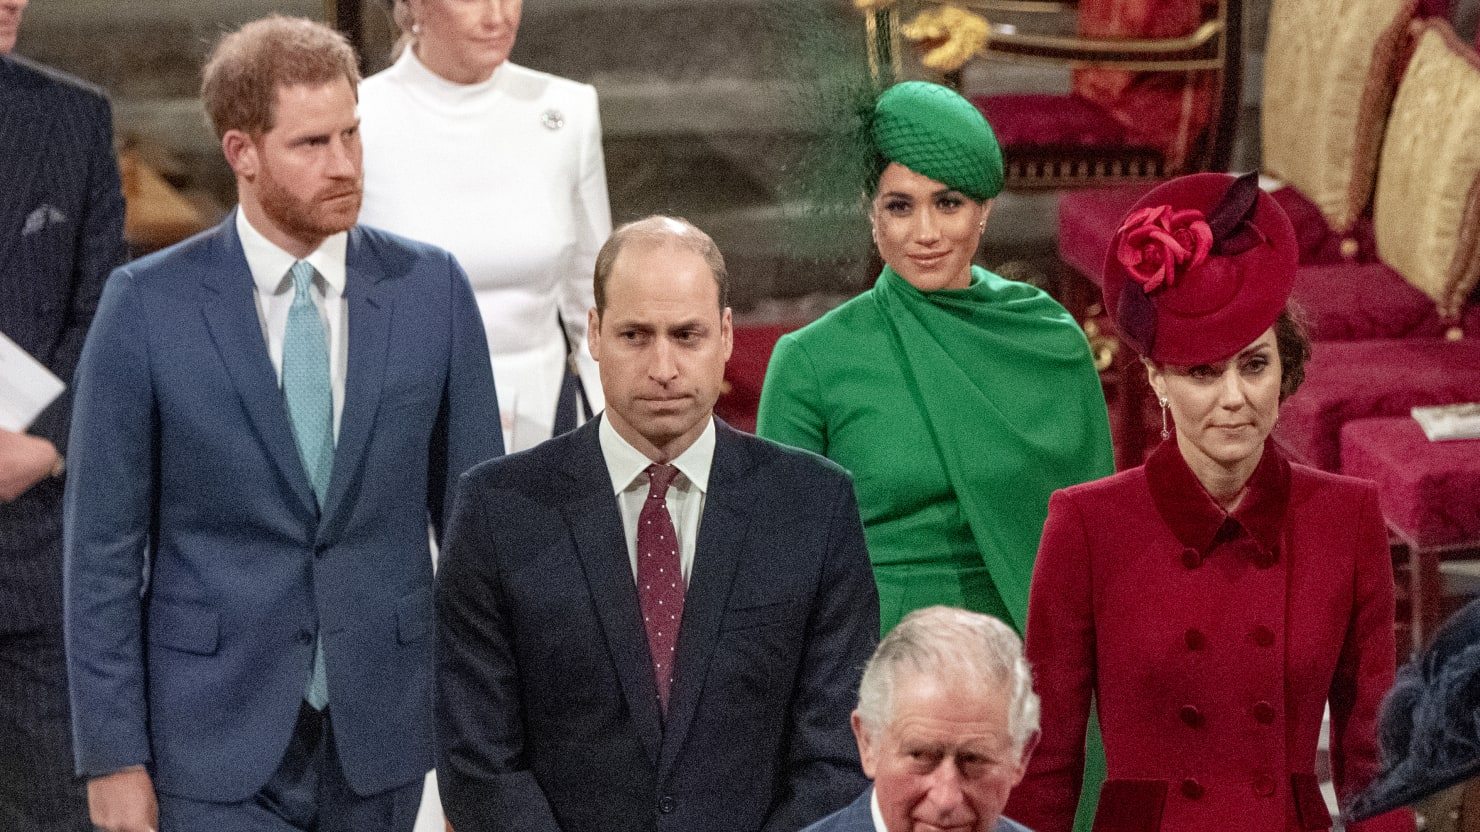 Harry and William's Feud Goes Back to When They Were Teenagers